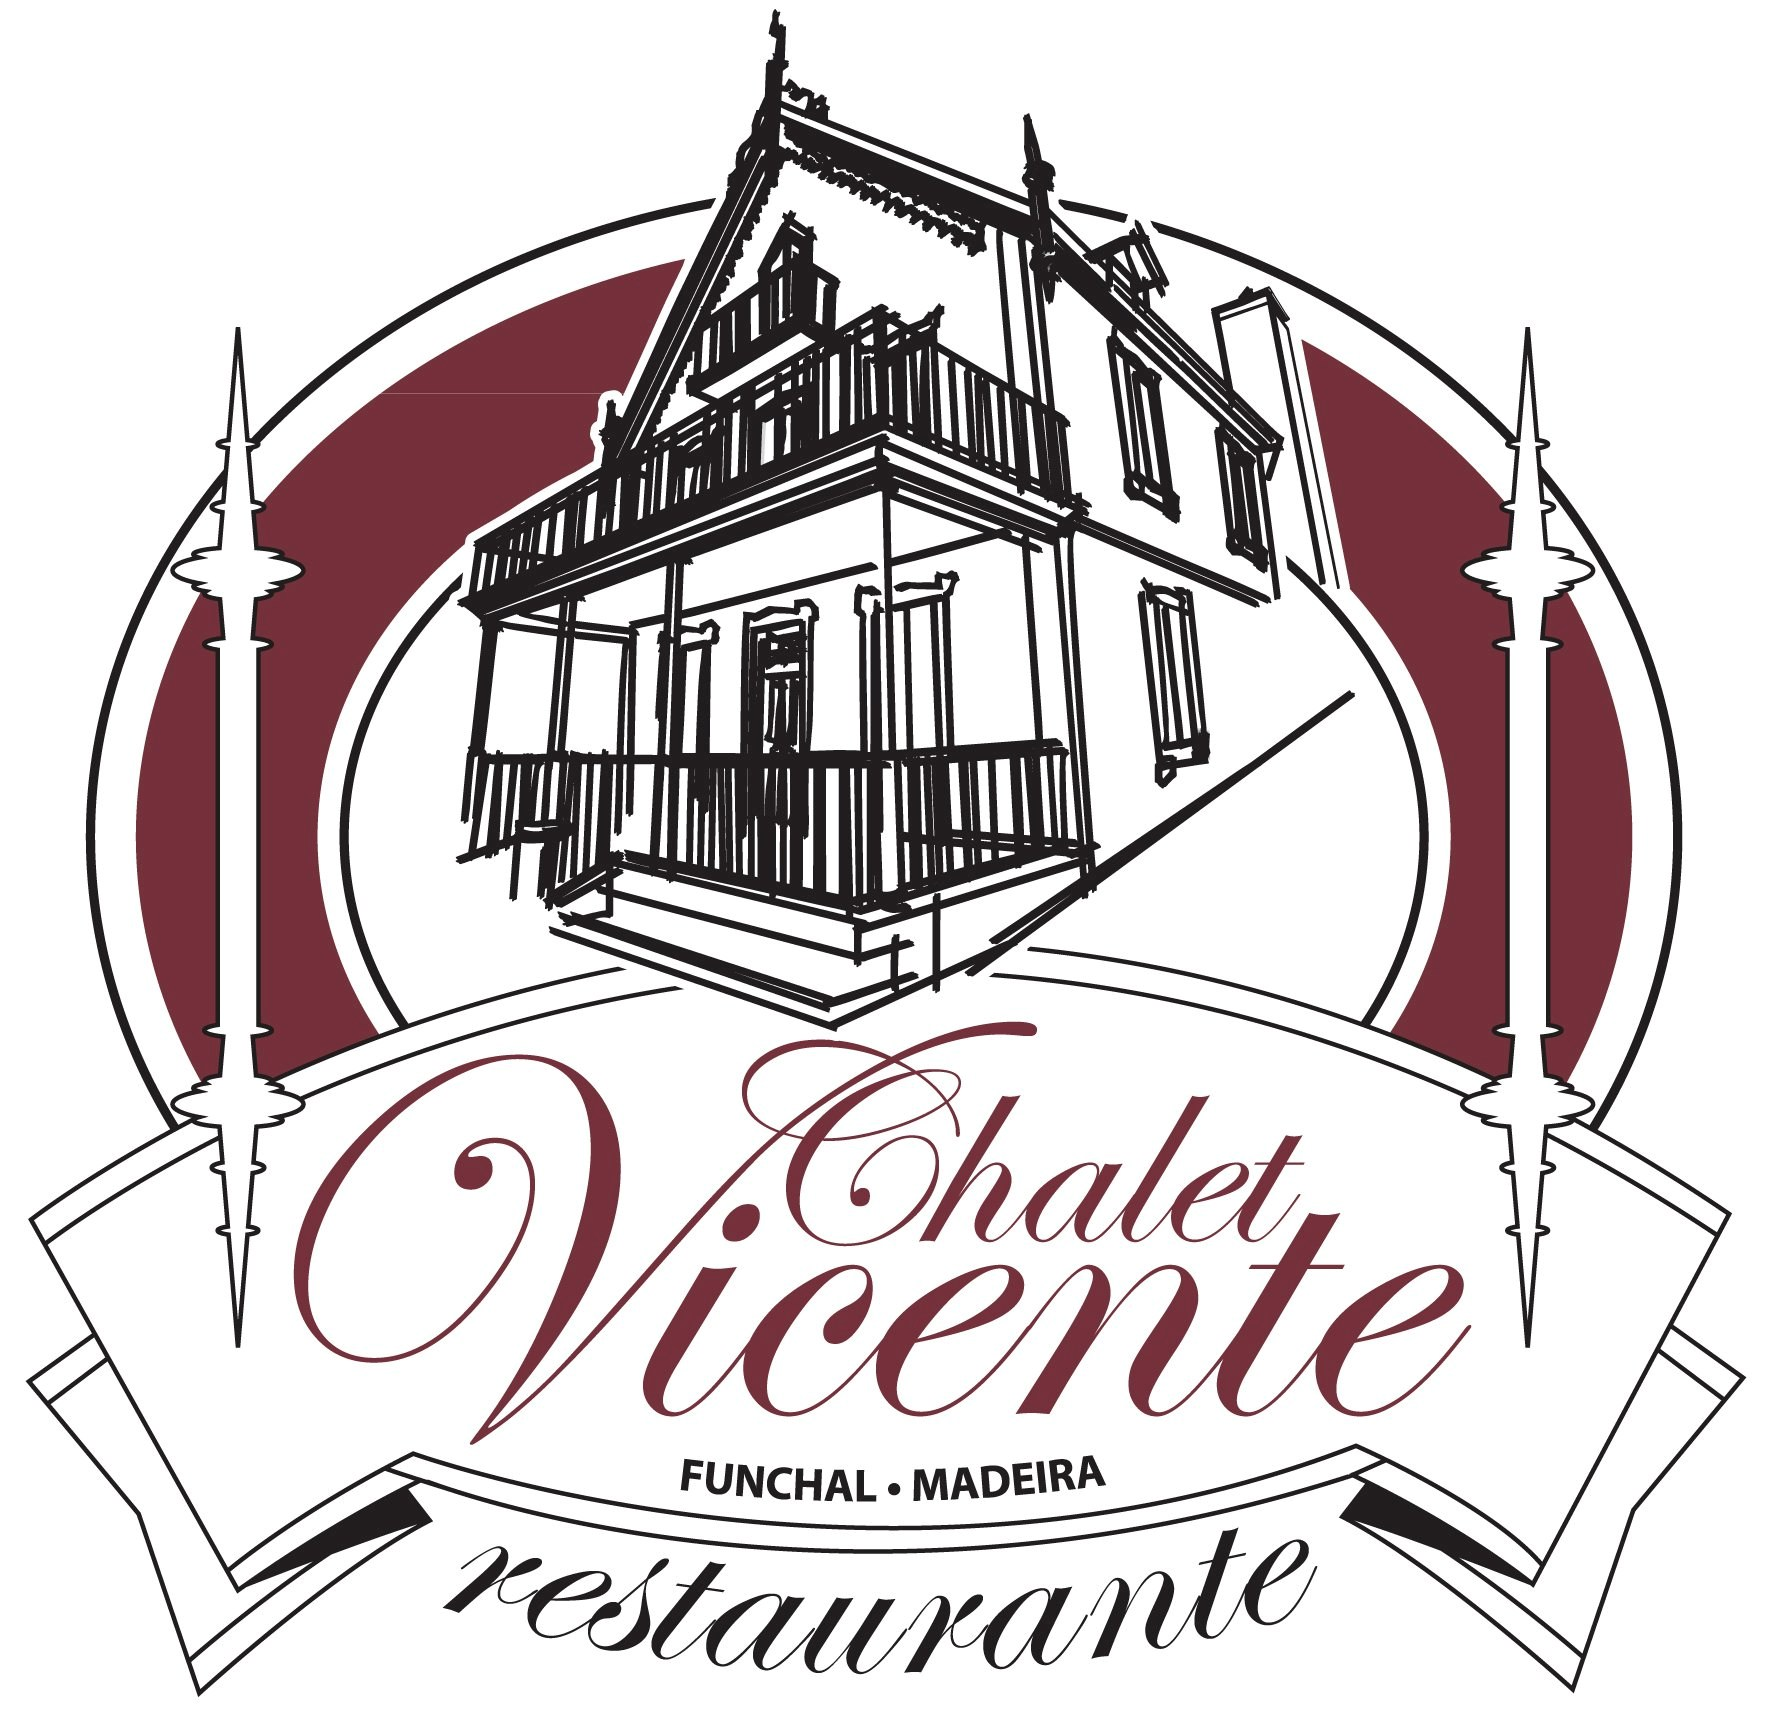 Chalet Vicente